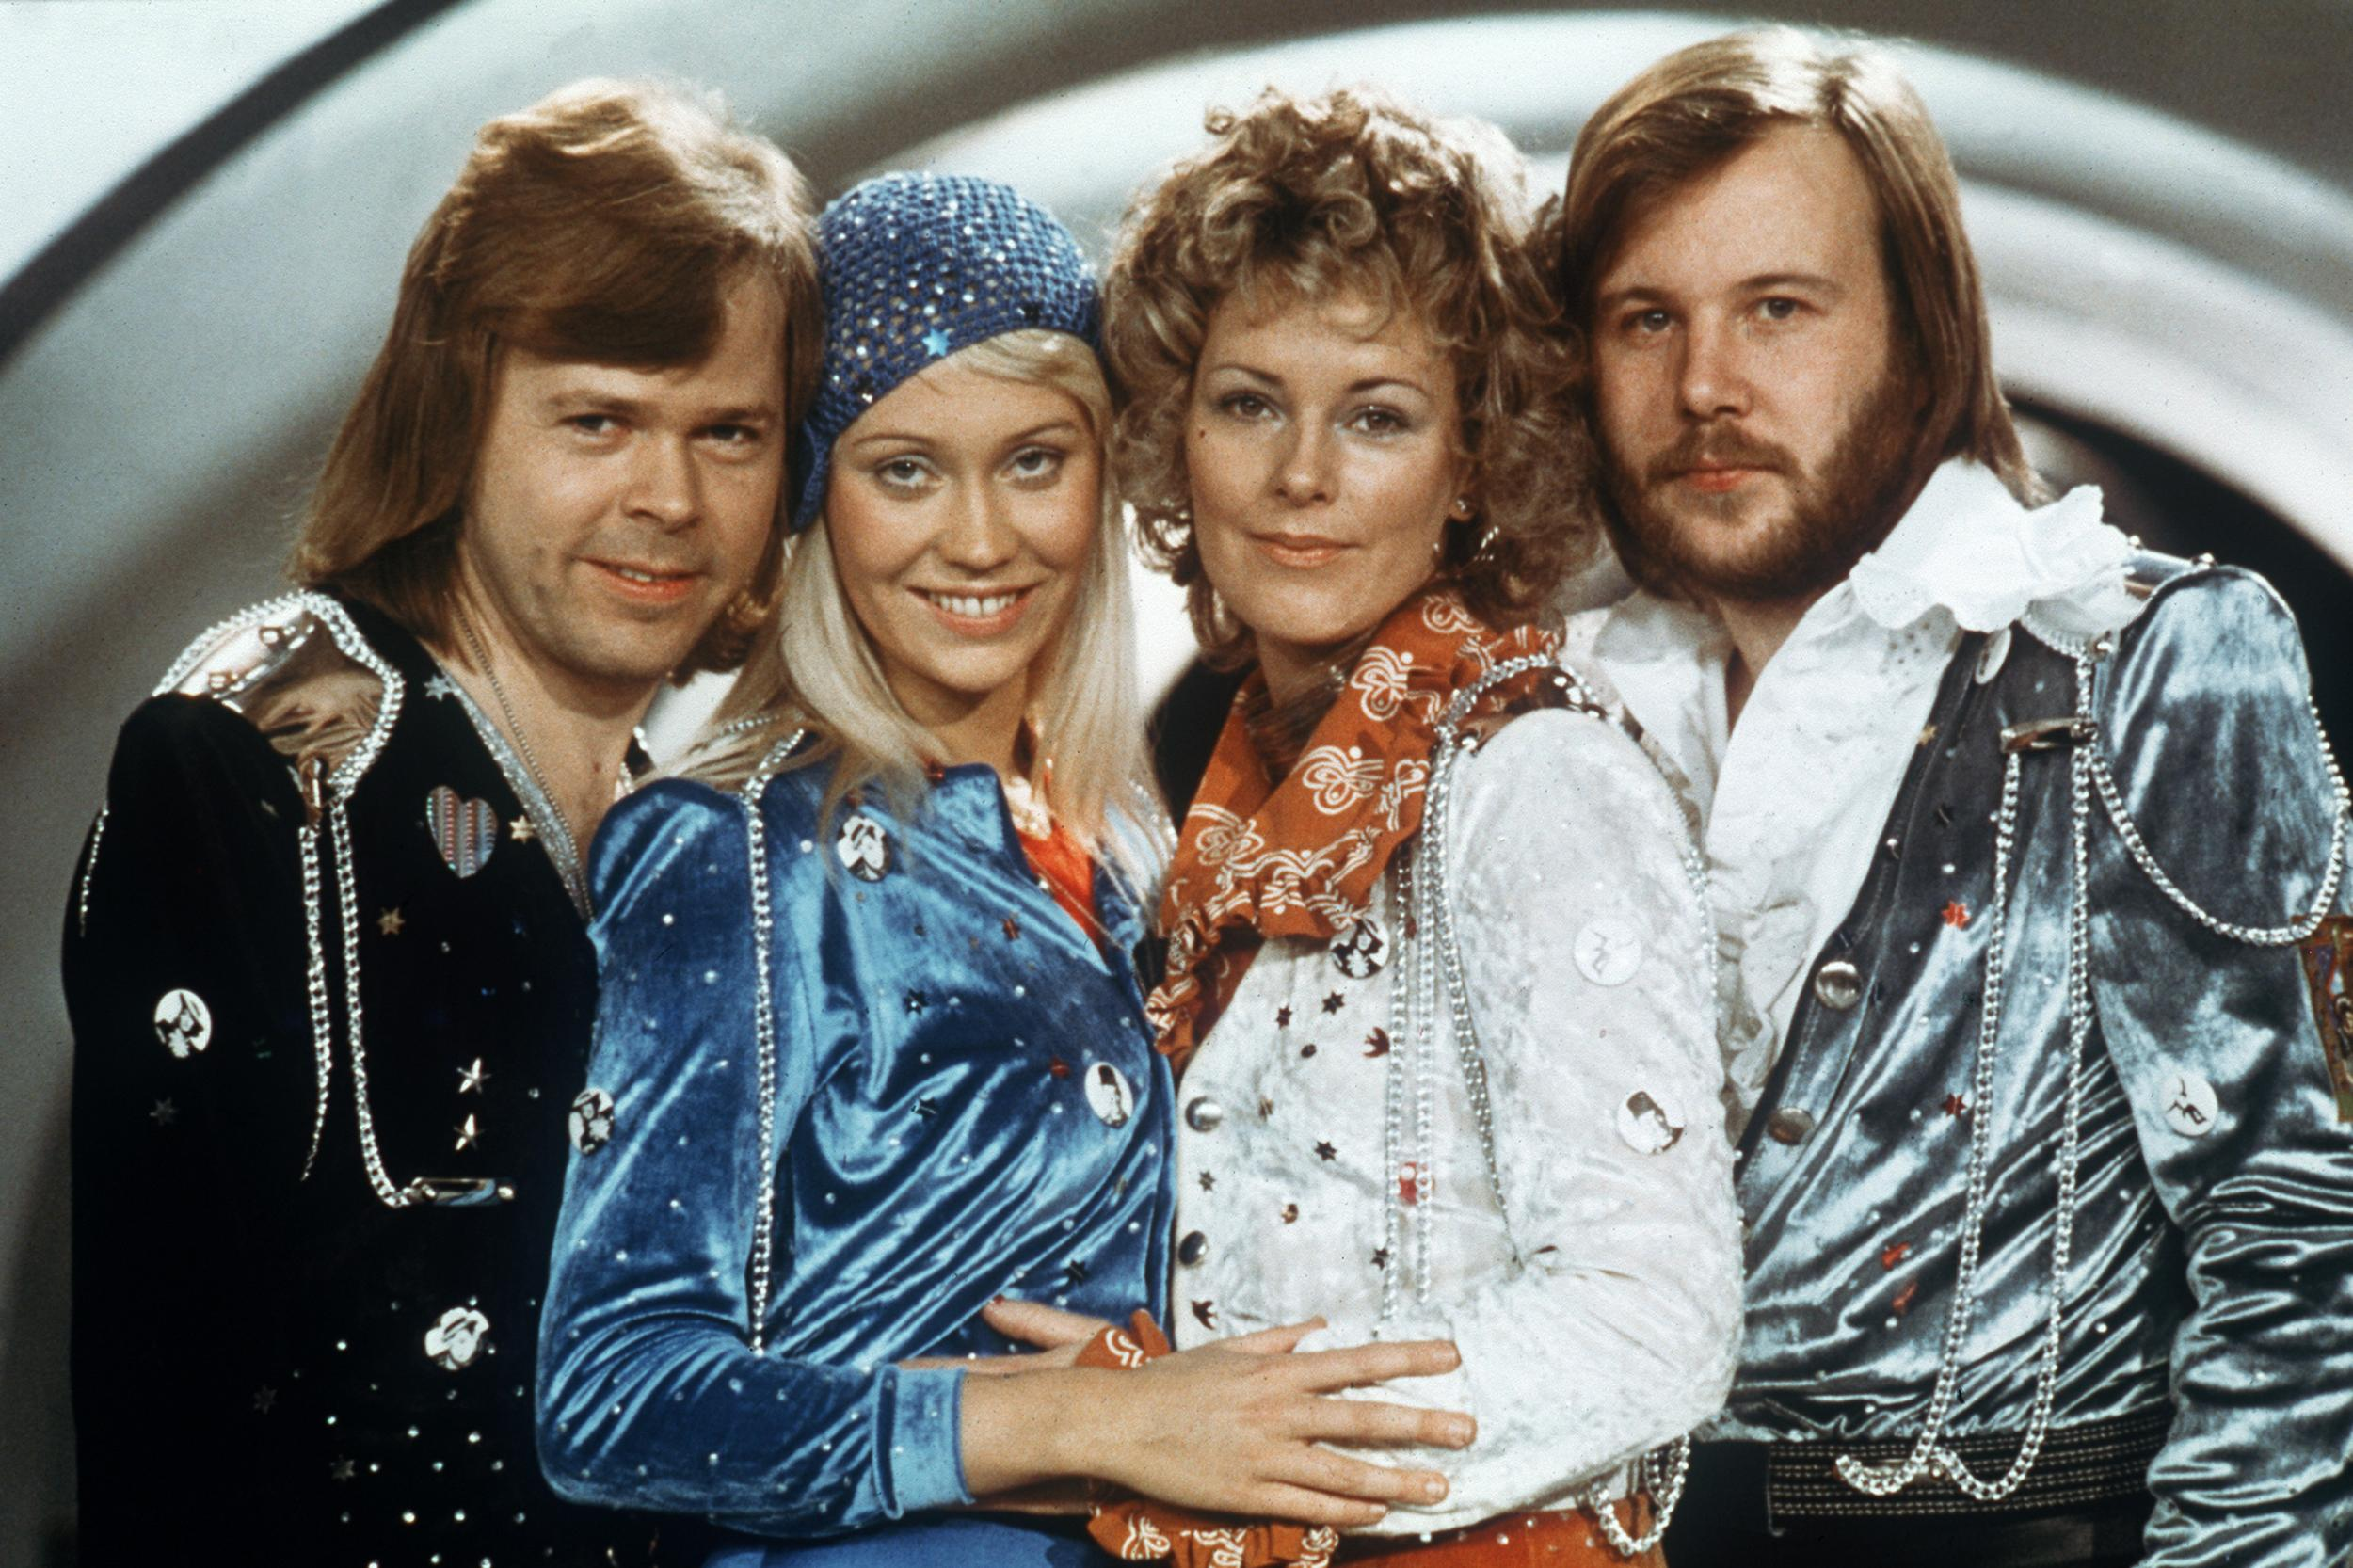 Eurovision Choir'19: ABBA's Hits To Open and Close The